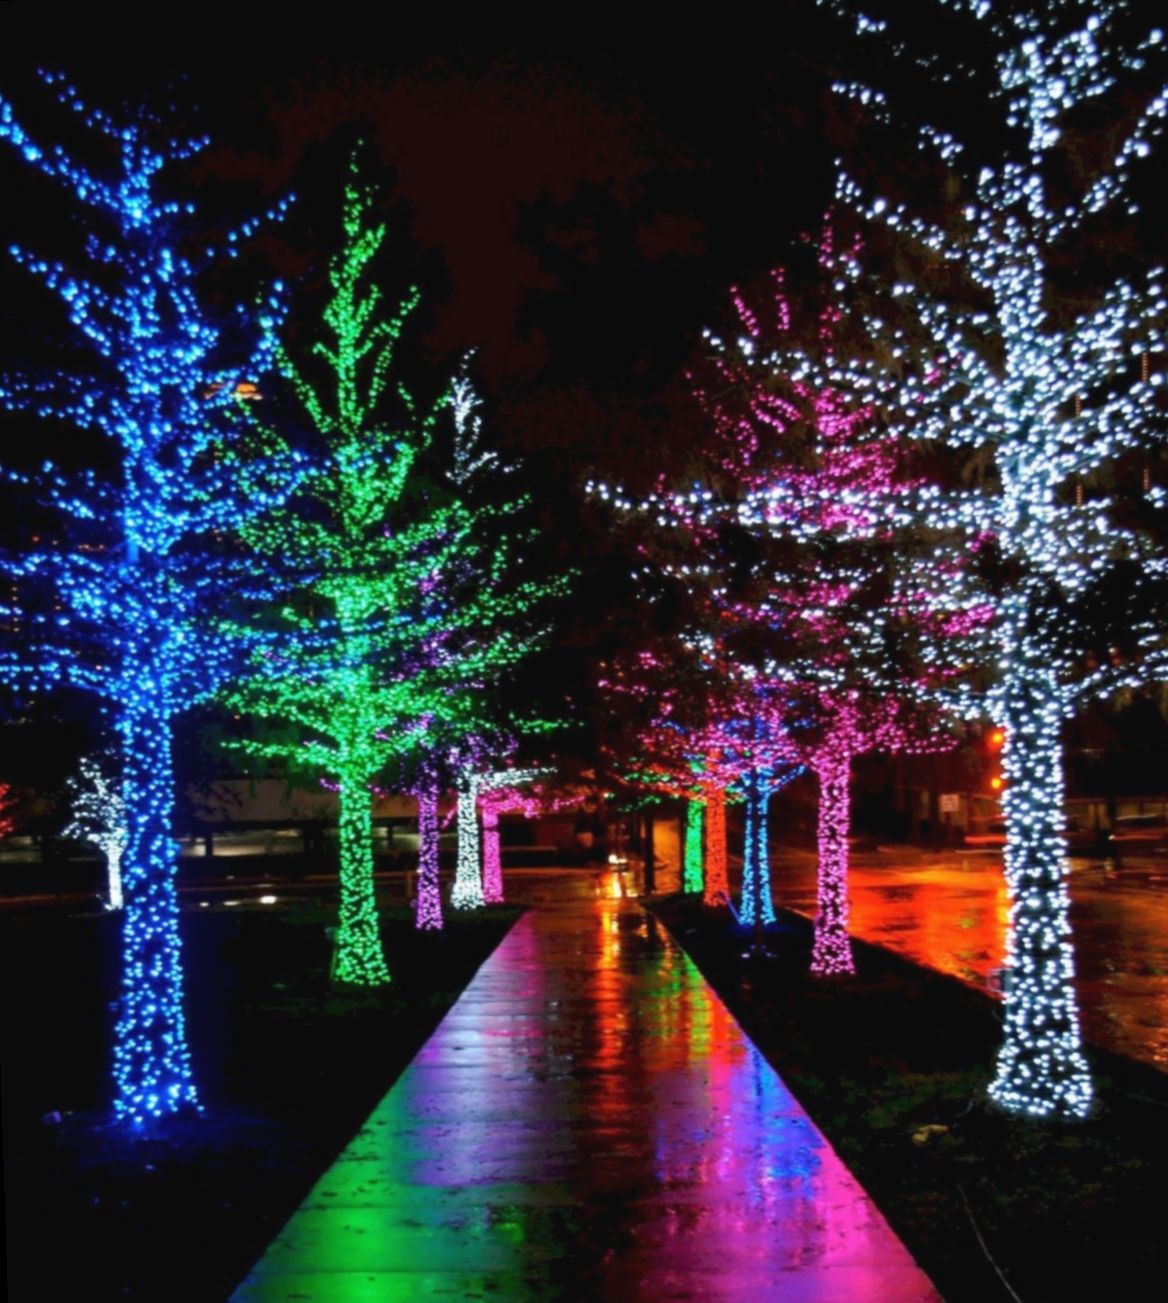 19 Christmas Lights Design Decorating Ideas In 2020 Hanging Christmas Lights Christmas House Lights Christmas Lights